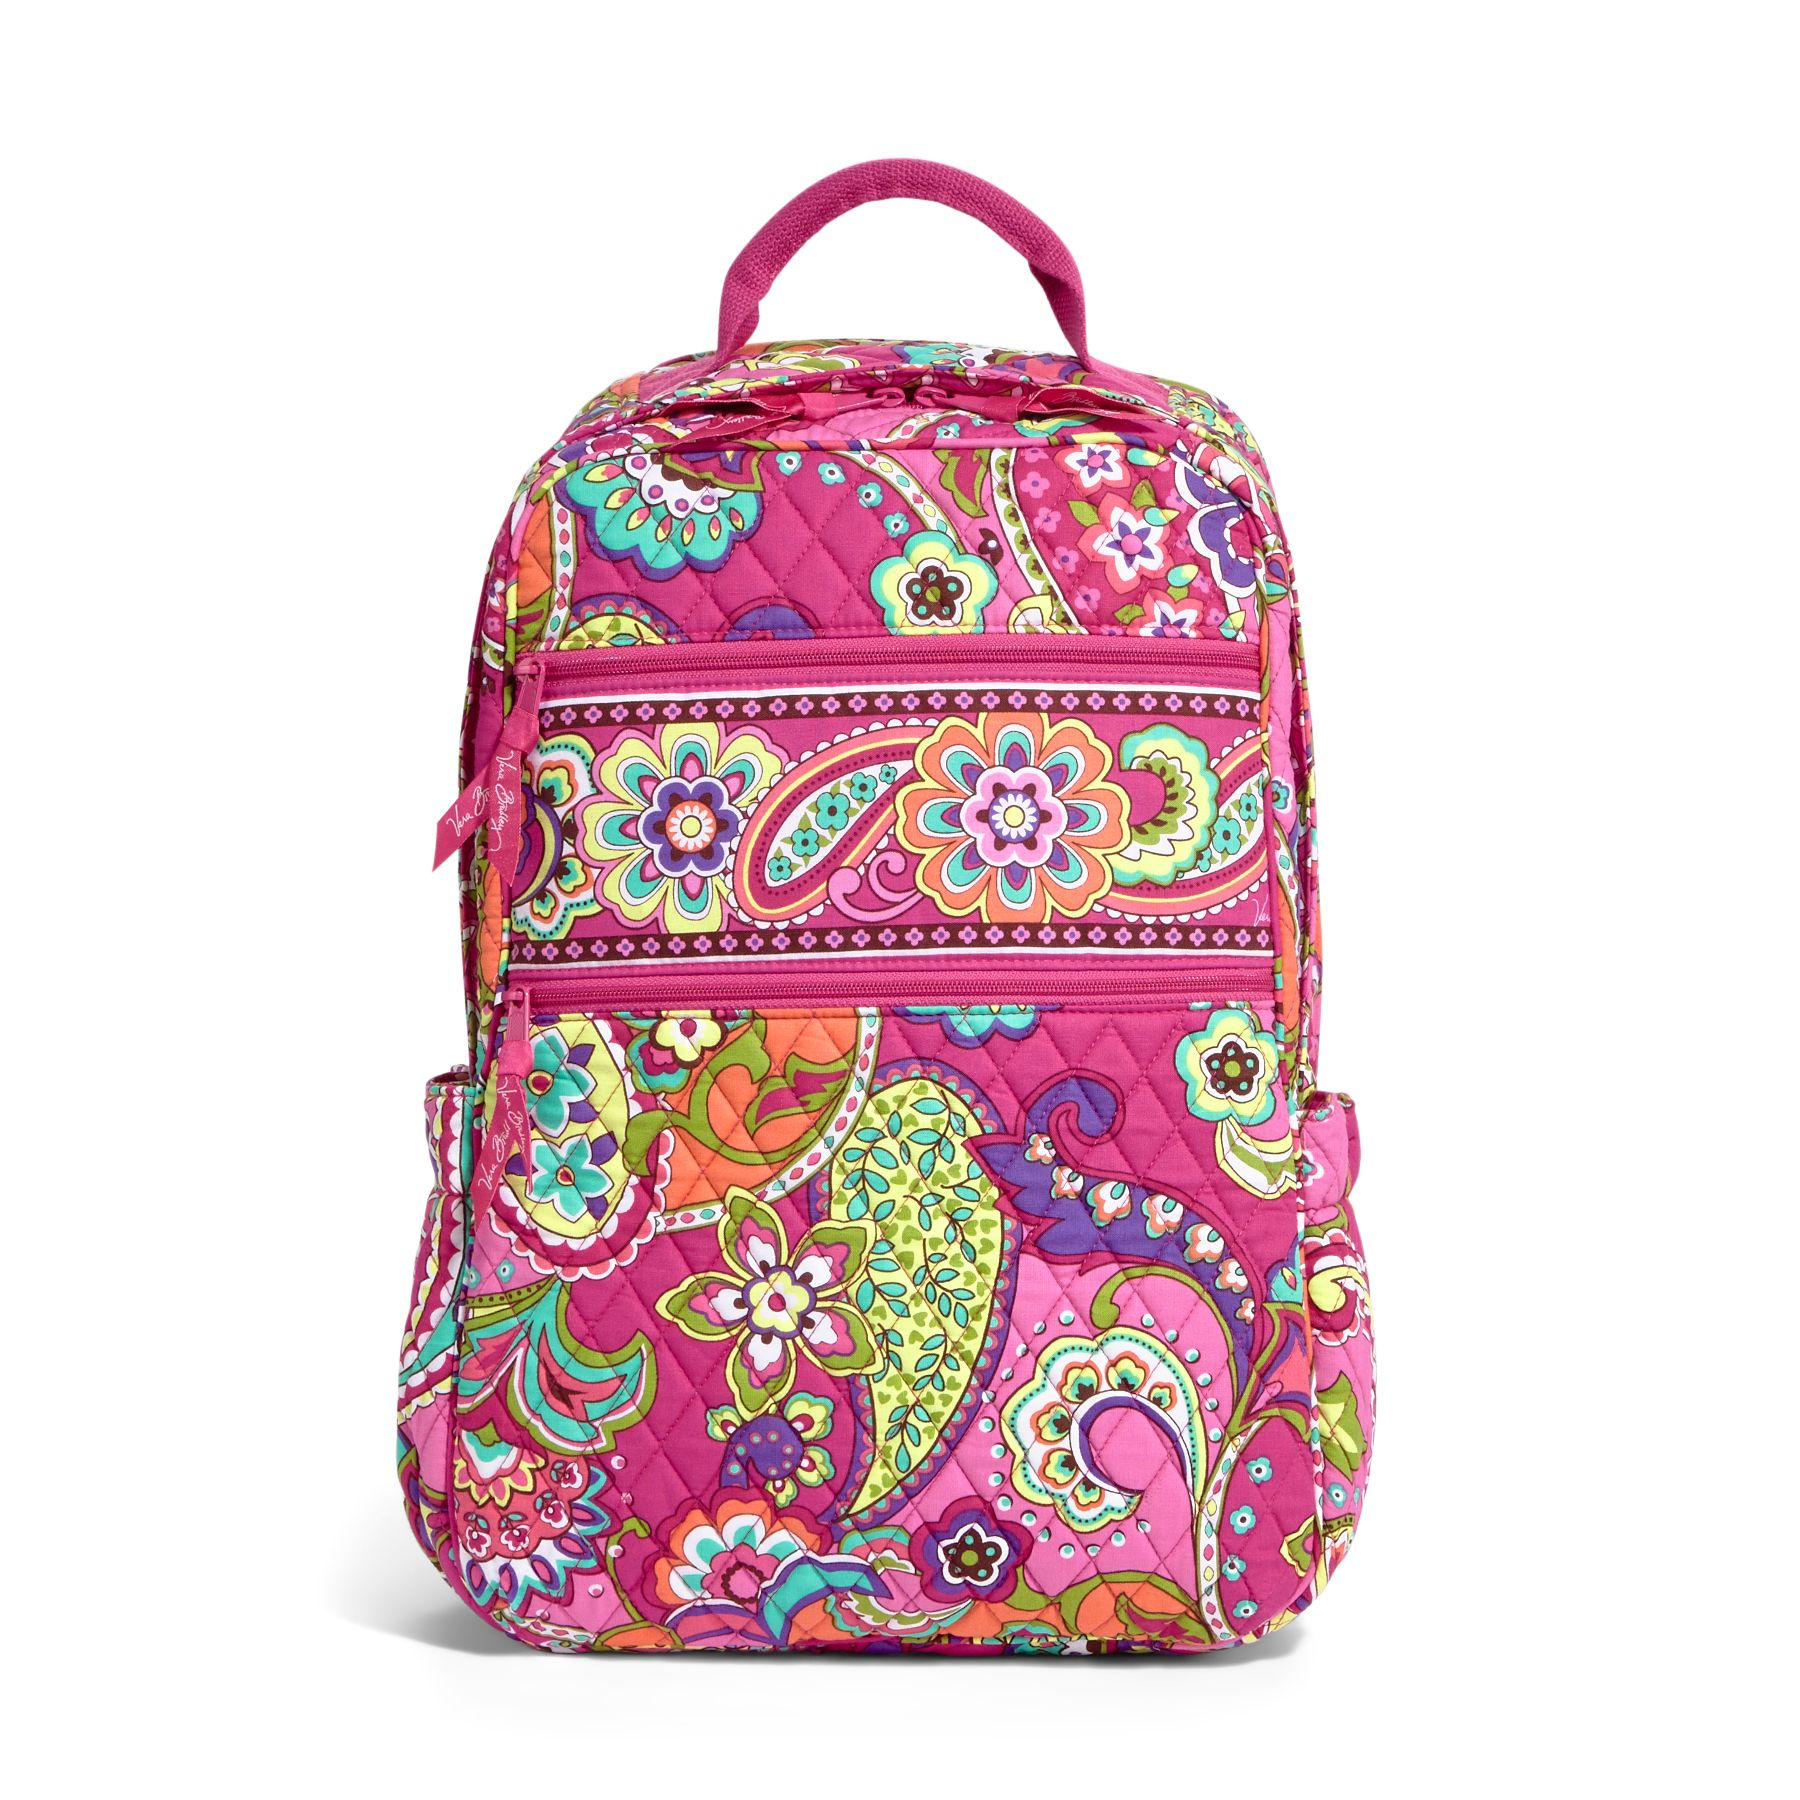 Vera Bradley Tech Backpack in Pink Swirls